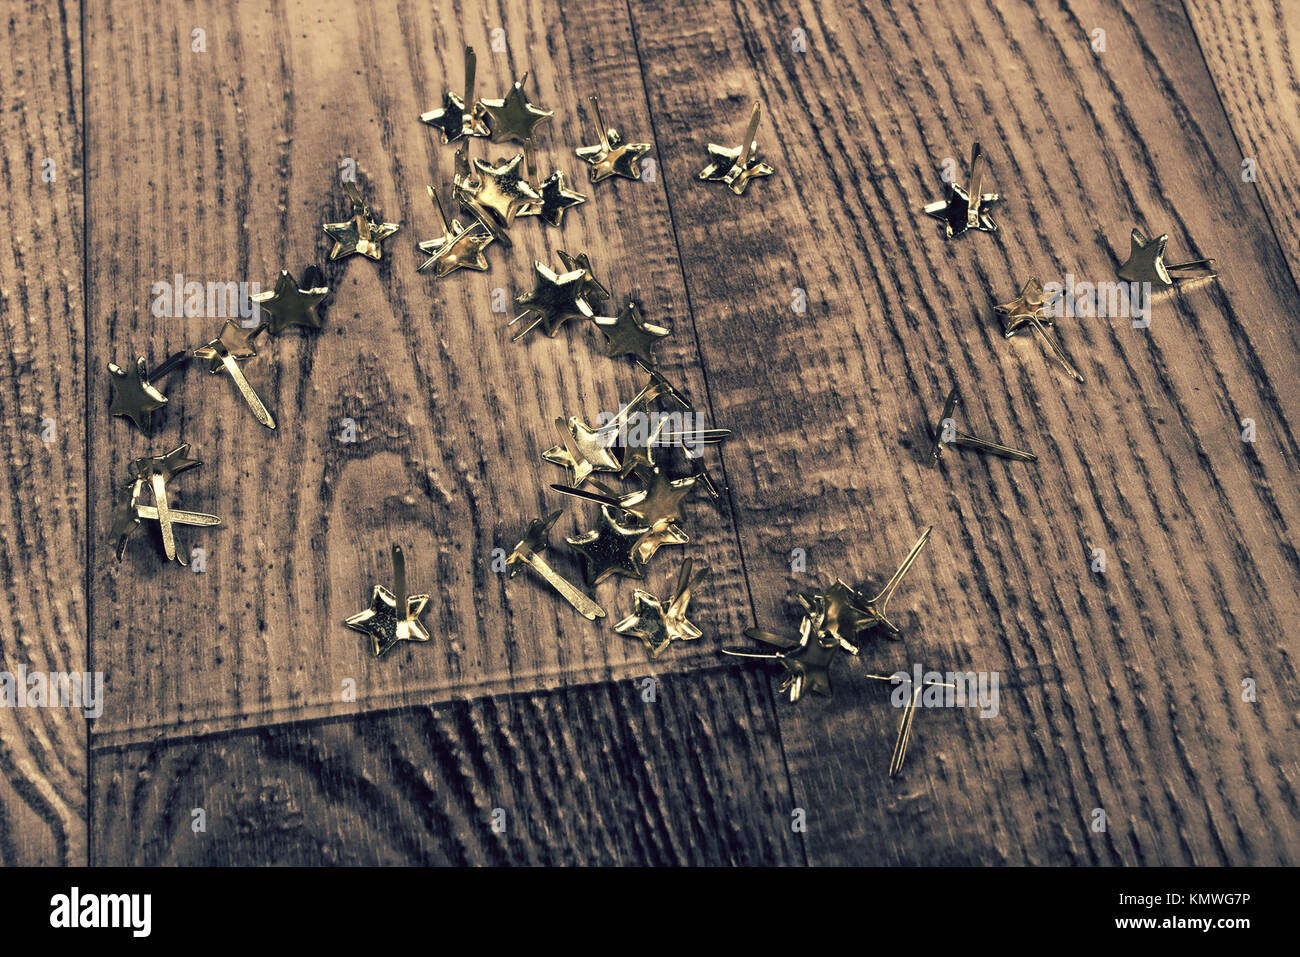 close up of vintage abstract background of gold stars, fasteners, laying on wood grain floor - Stock Image